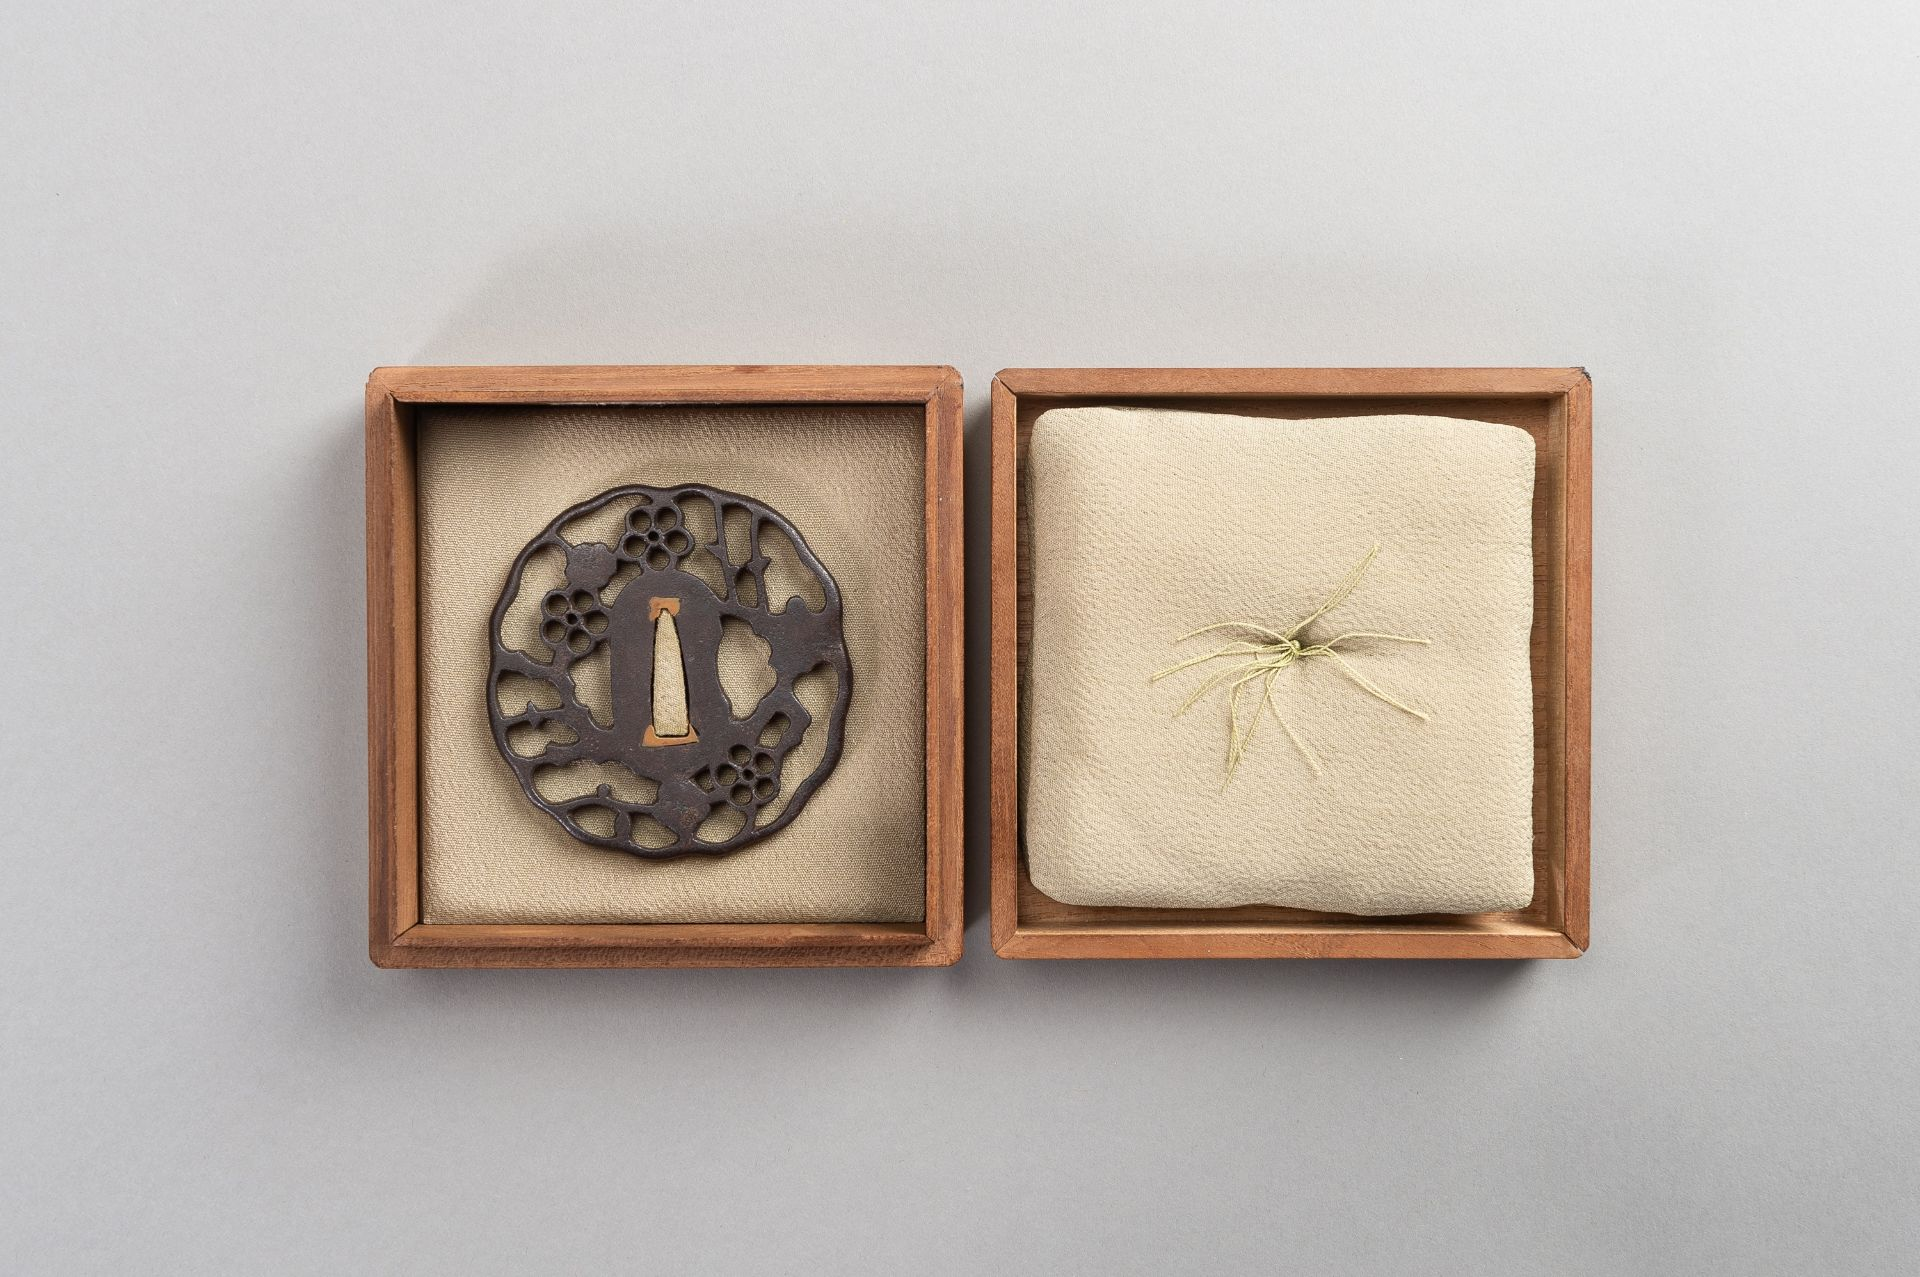 AN IRON SUKASHI-TSUBA WITH FLOWERS AND CLOUDS - Image 6 of 7